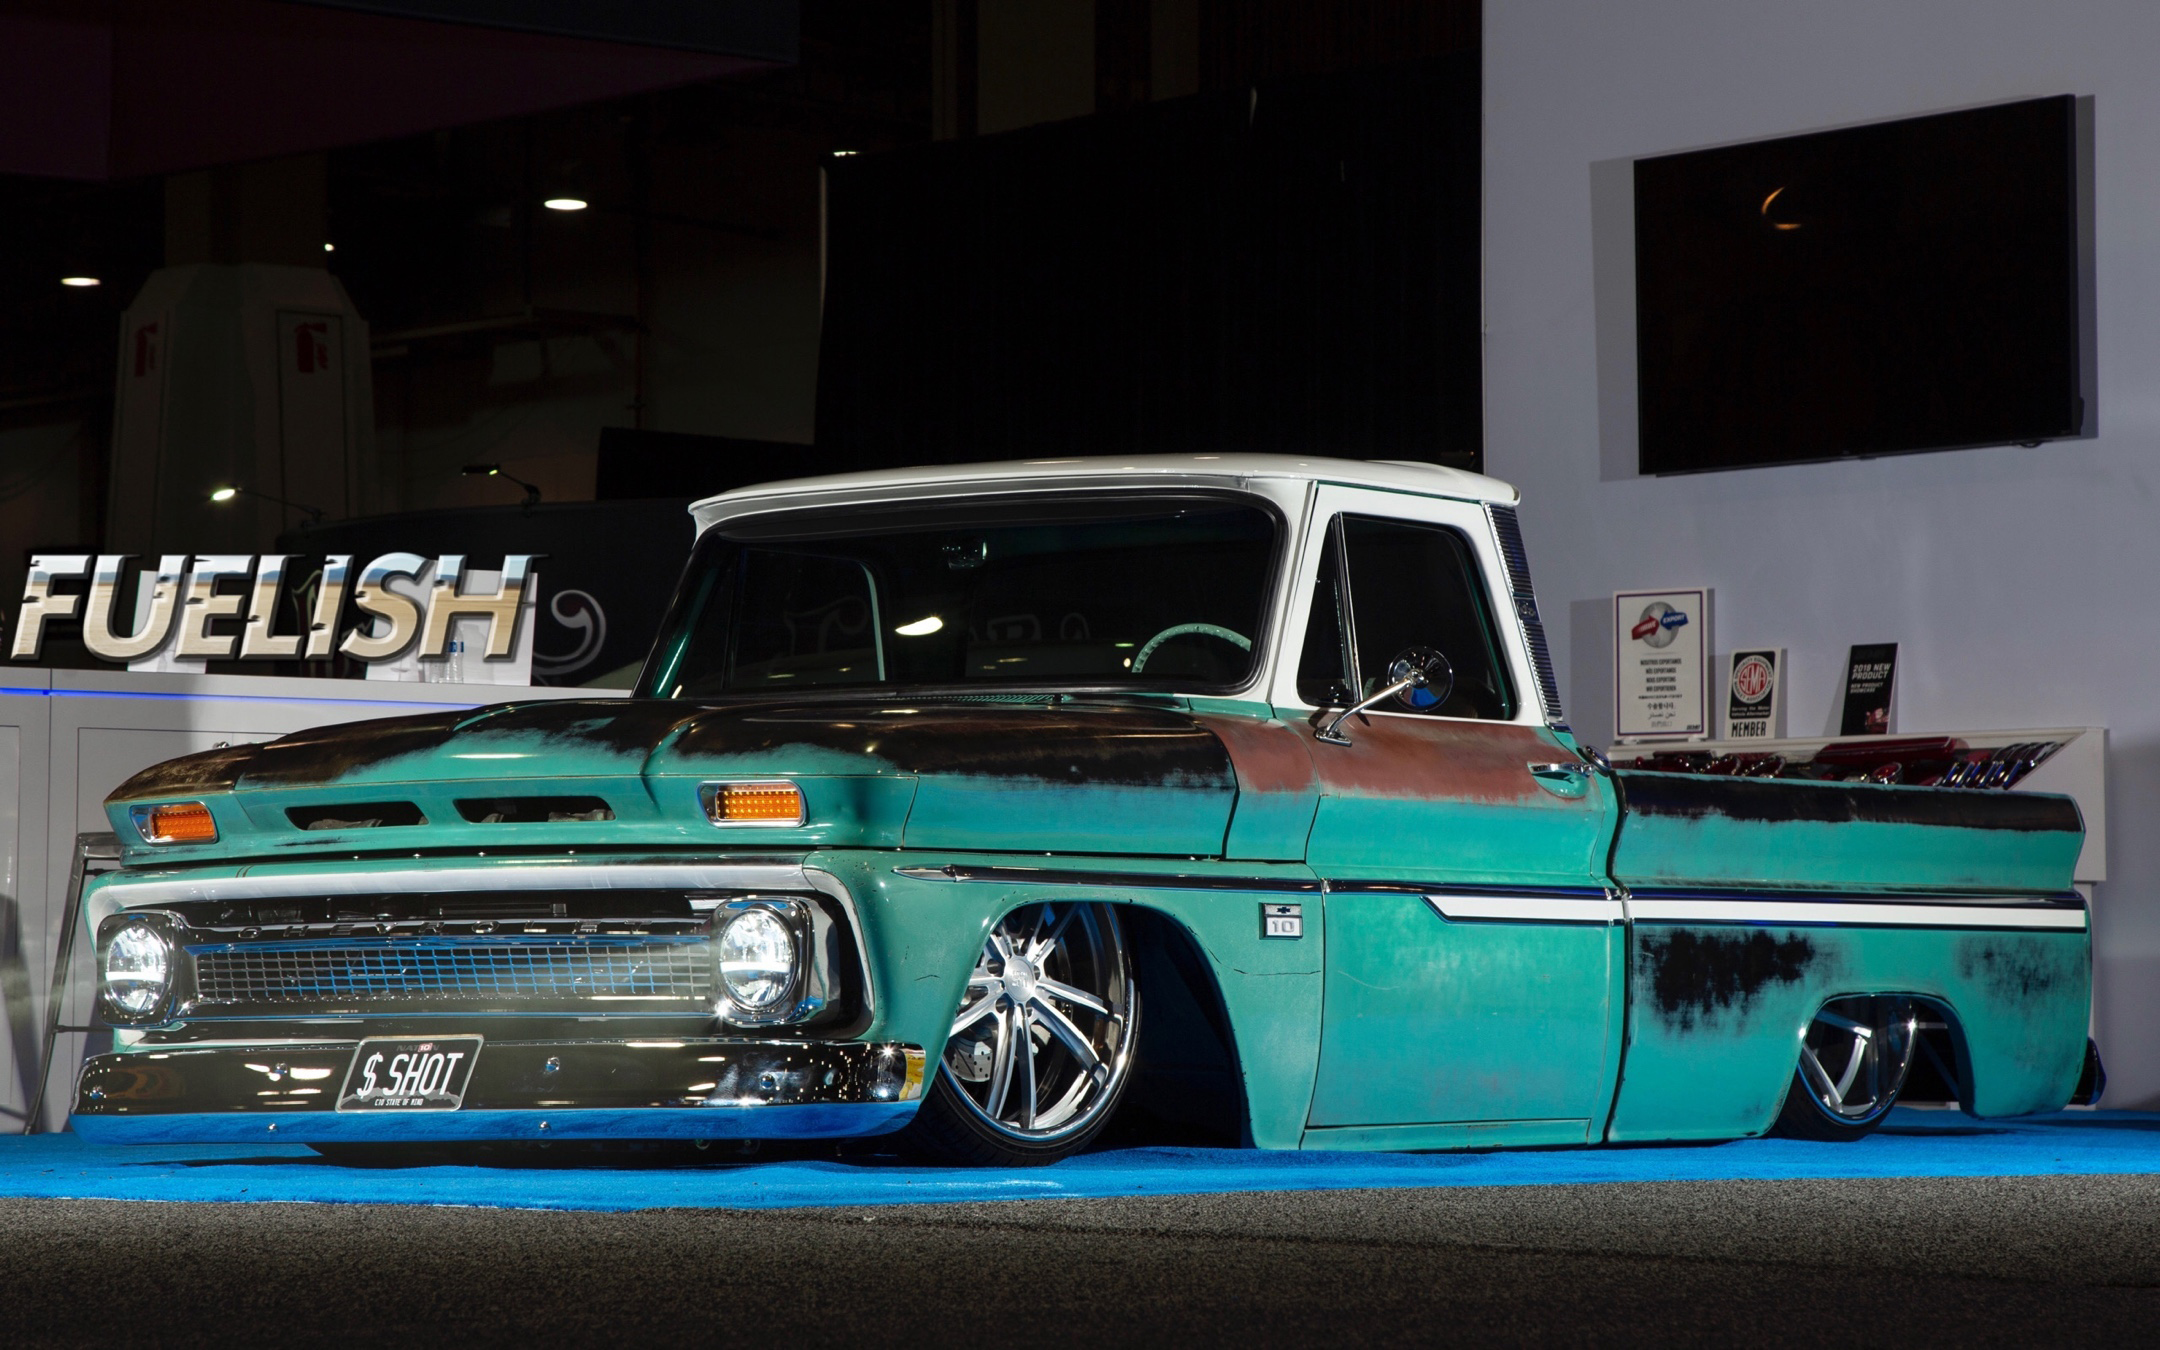 1966 Chevy C10 featuring Universal Pro Series bench in SPORT-LR design with camel vinyl, white contrast stitching, and white accents. Includes matching dash pad and SPORT-VXR door panels